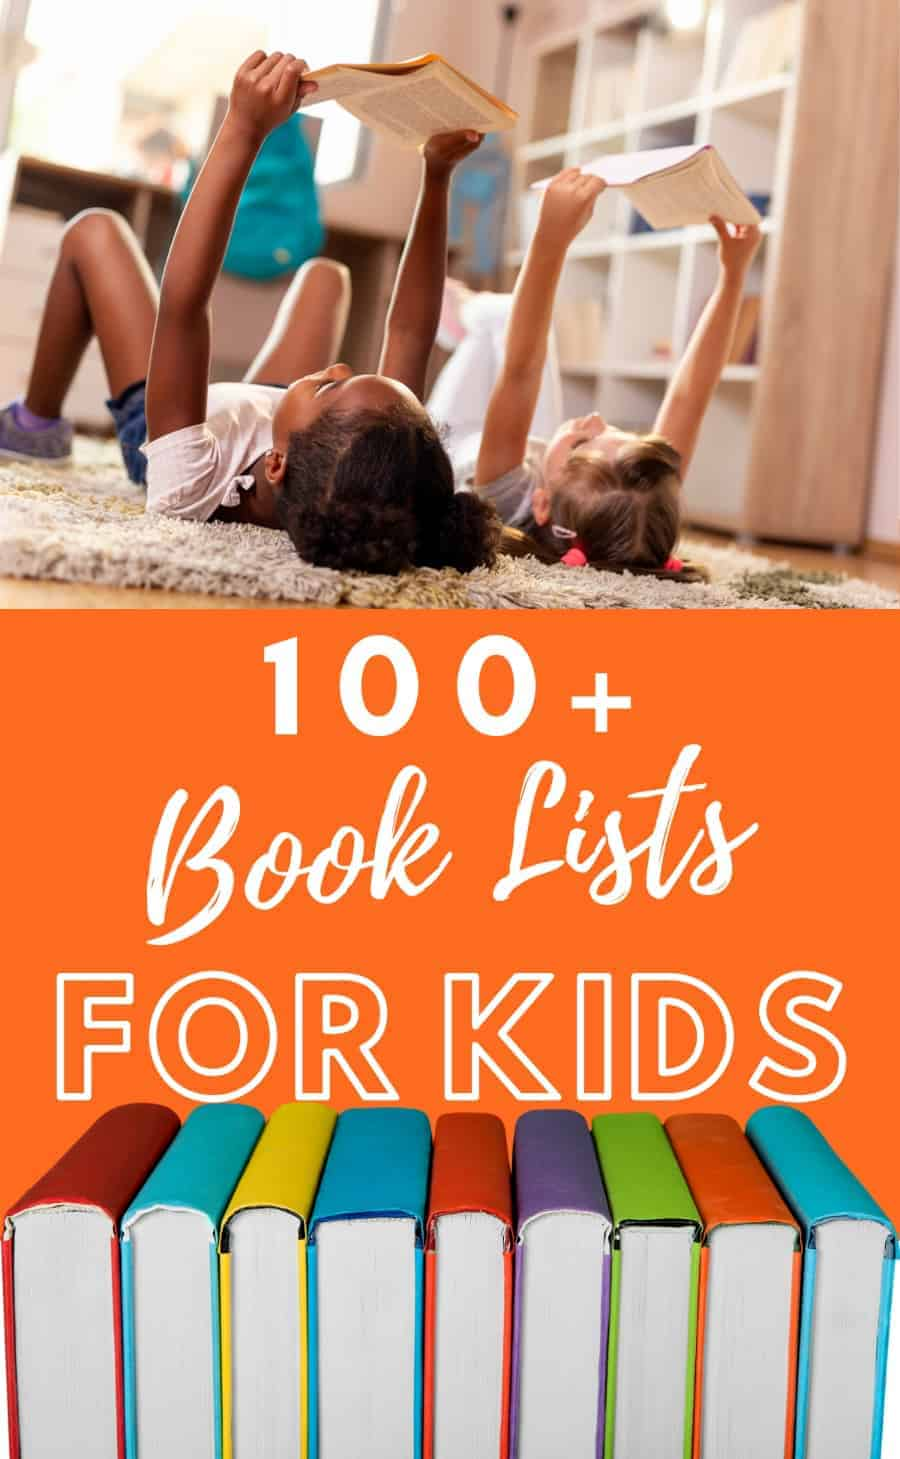 100 book lists of children's book recommendations for kids